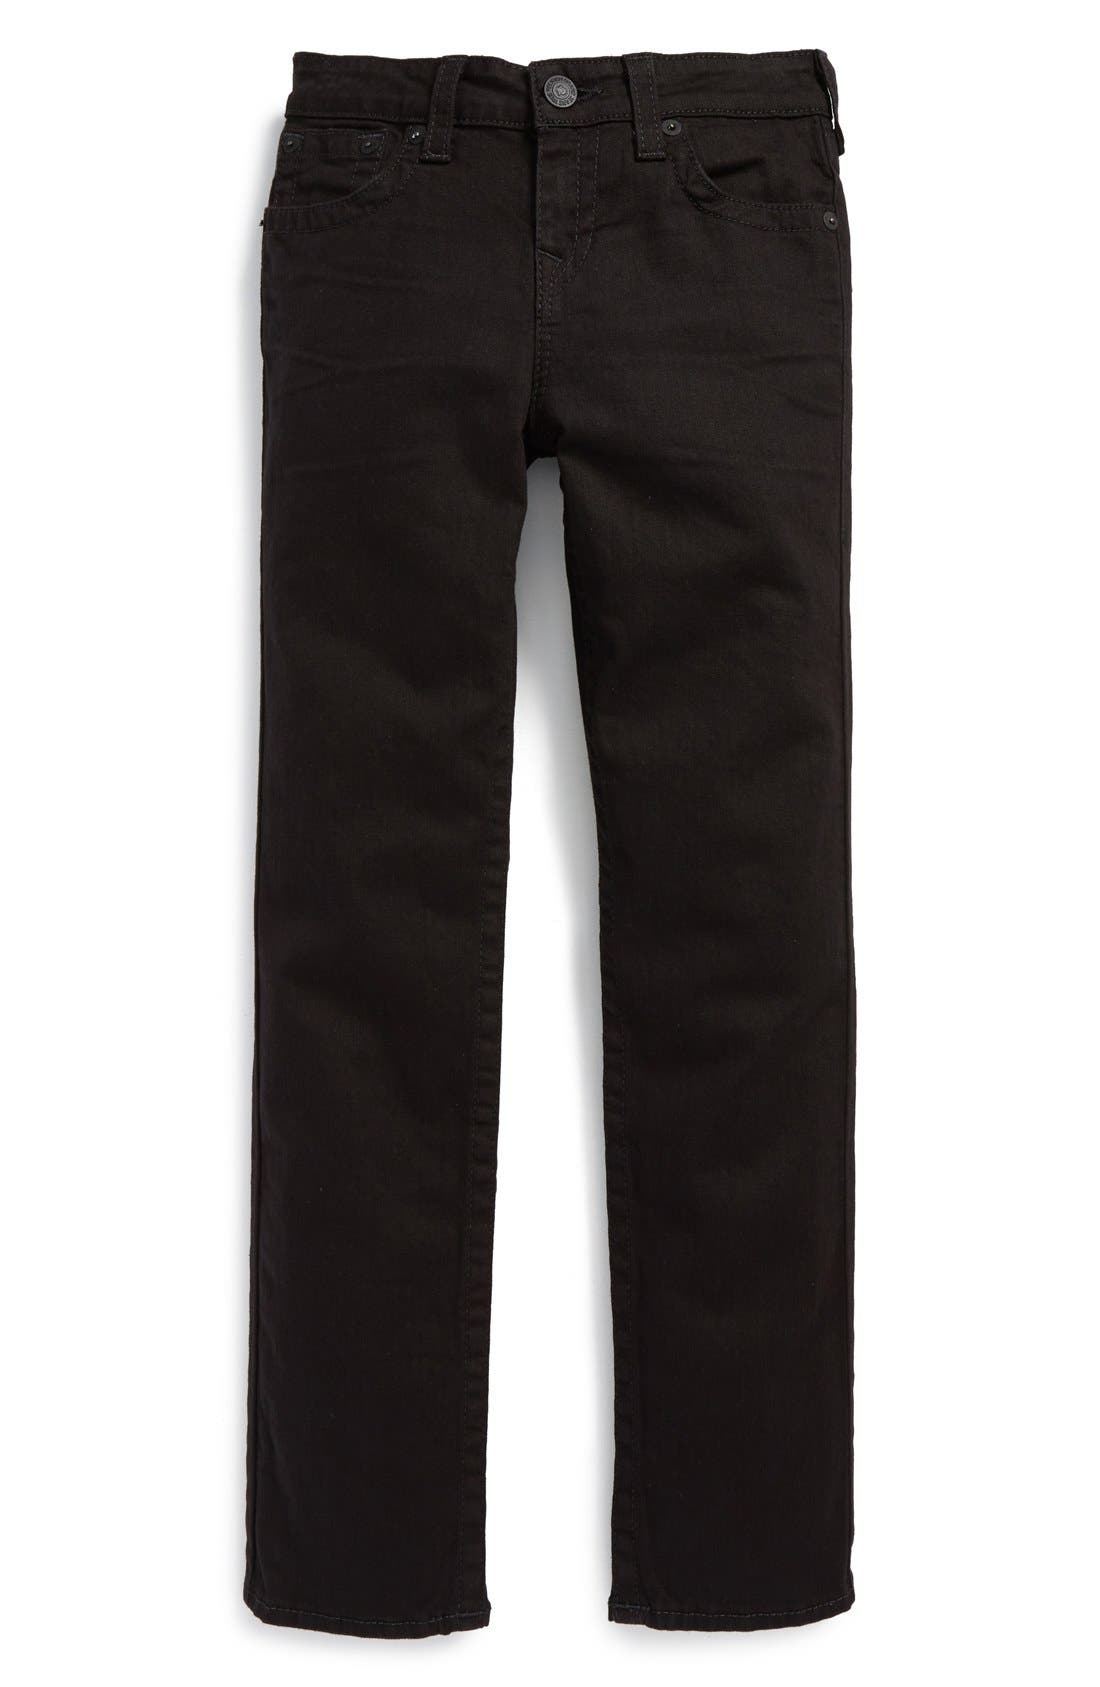 'Geno' Relaxed Slim Fit Jeans,                         Main,                         color, Superfly Wash